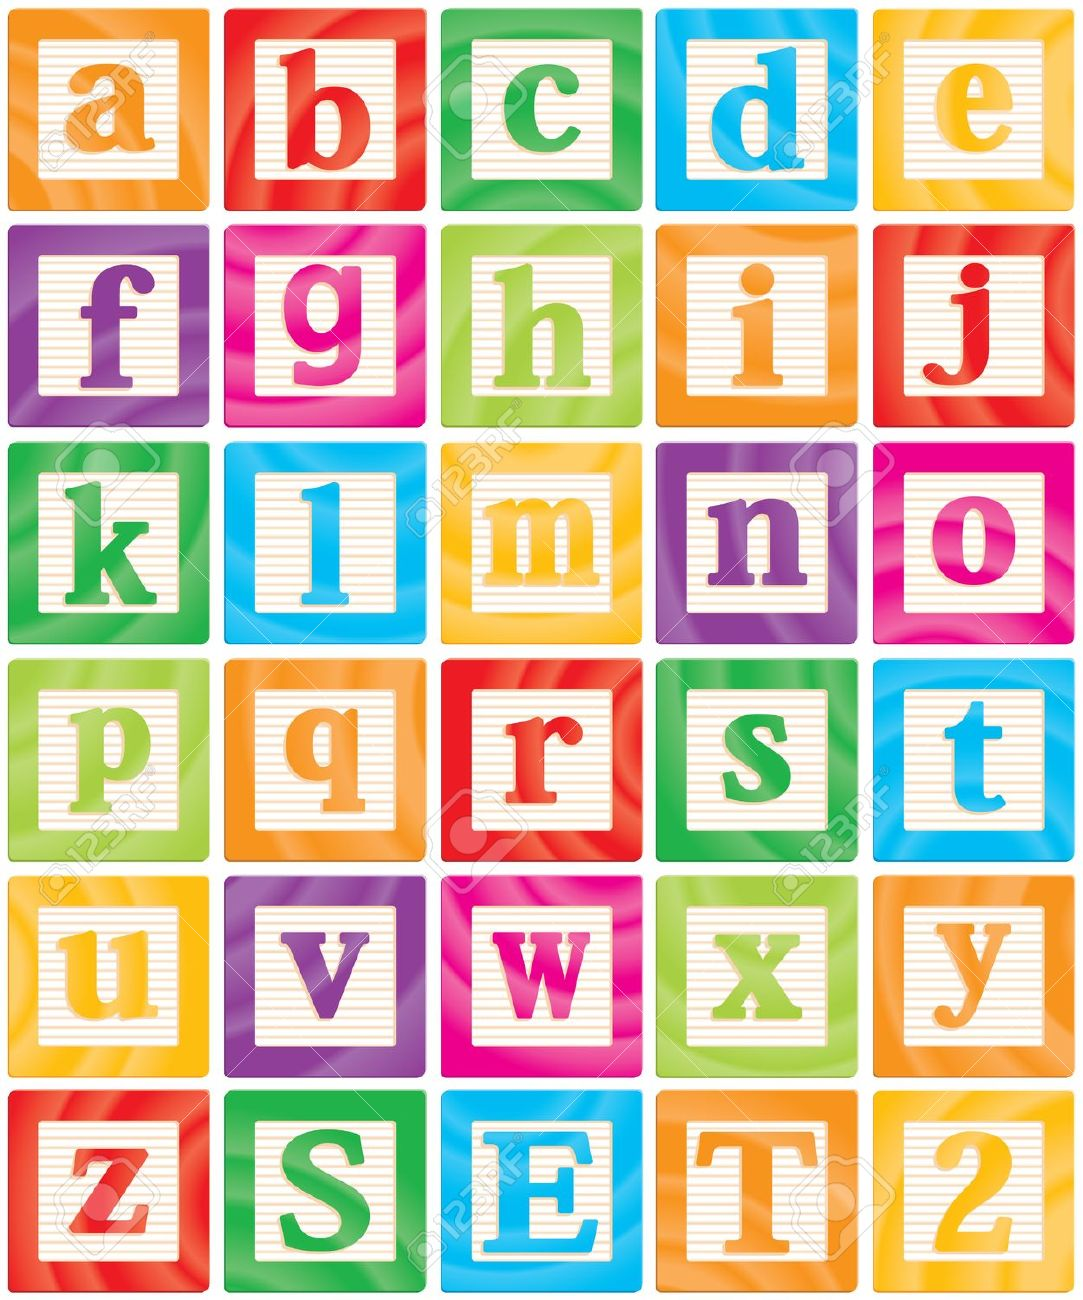 Free Alphabet Blocks Cliparts Download Free Clip Art Free Clip Art On Clipart Library